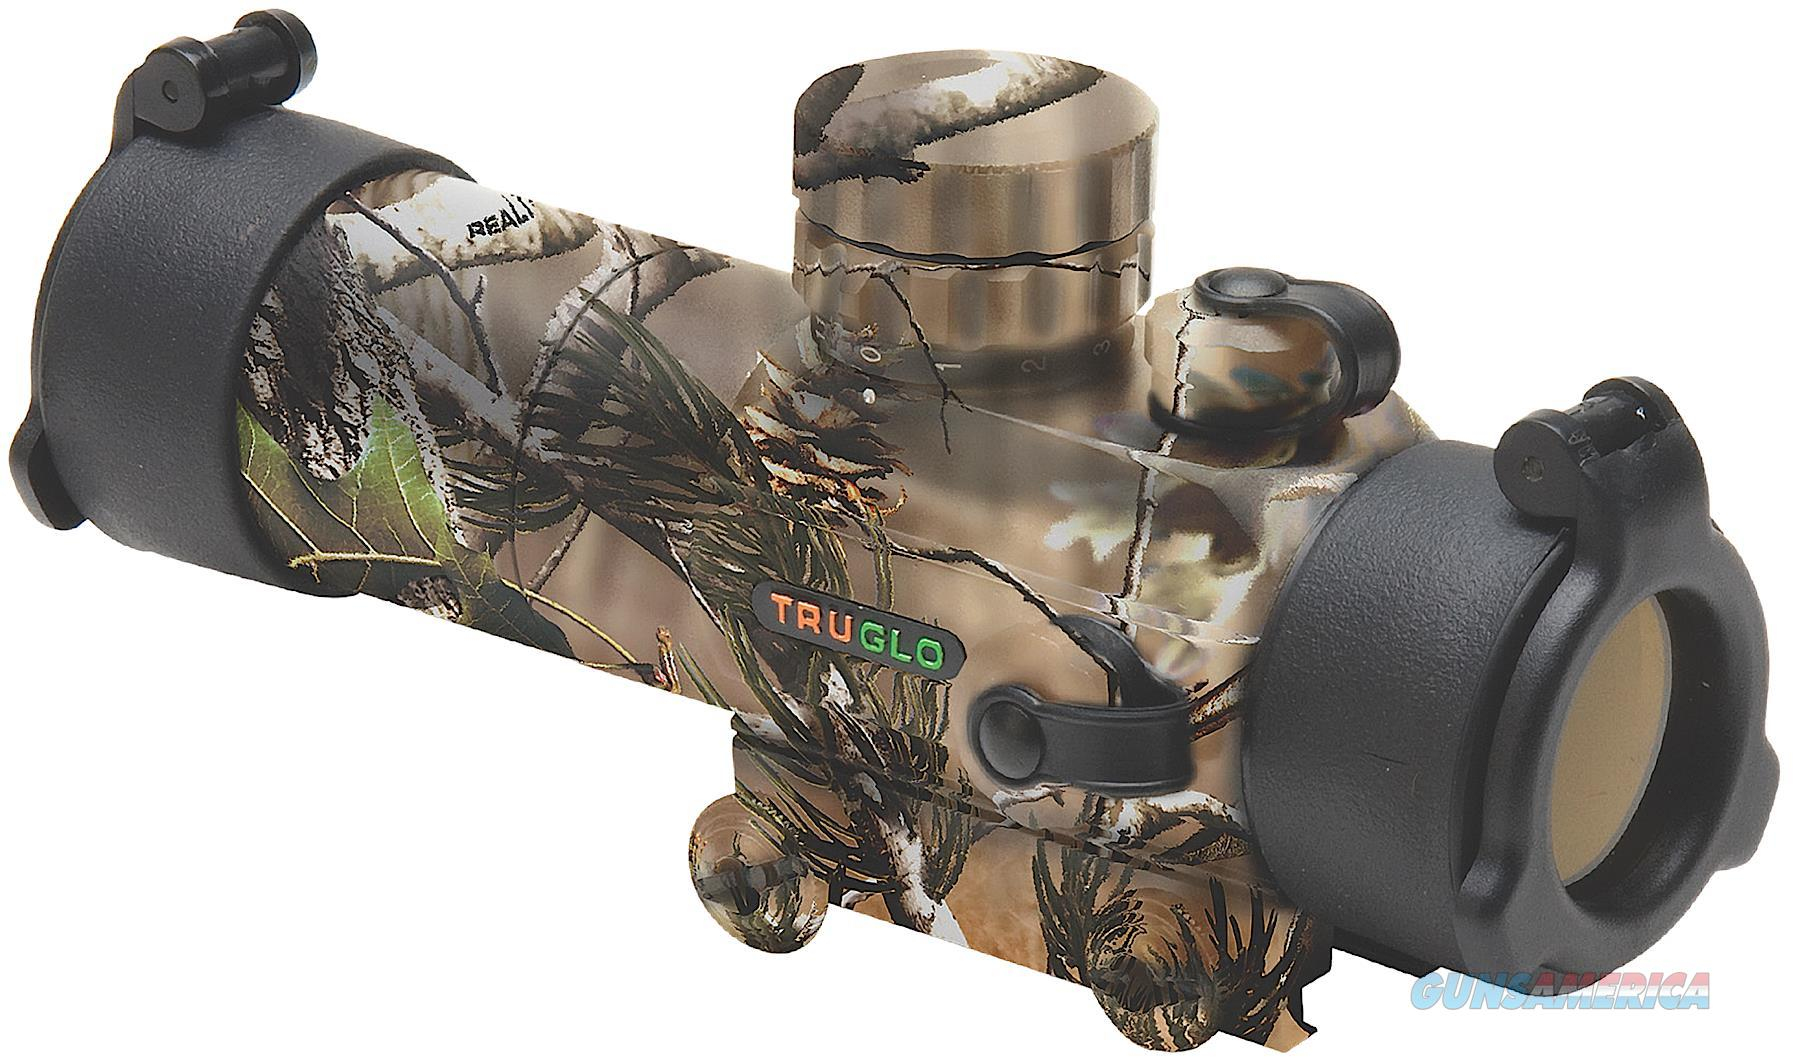 Truglo Tg8030ga Gobble Stopper 1X 30Mm Obj Unlimited Eye Relief 3 Moa Realtree Apg TG8030GA  Non-Guns > Iron/Metal/Peep Sights